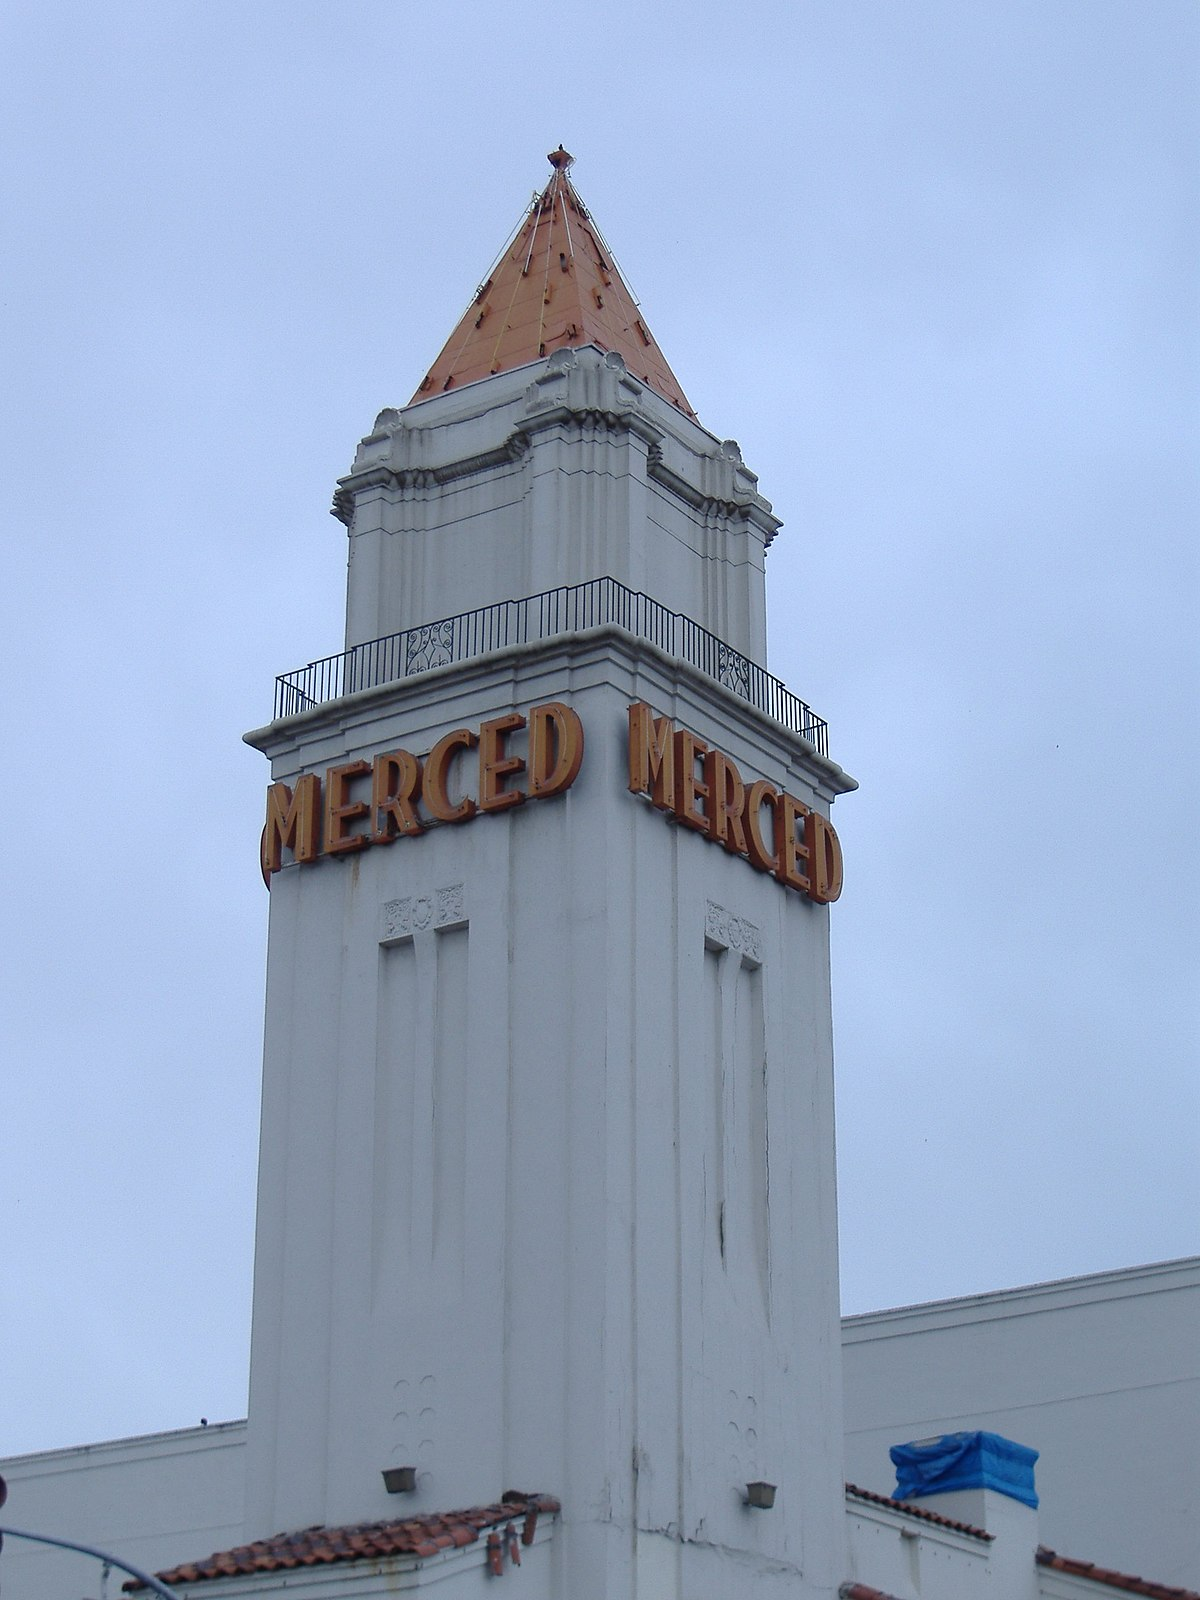 Wikimedia Commons: Merced, California